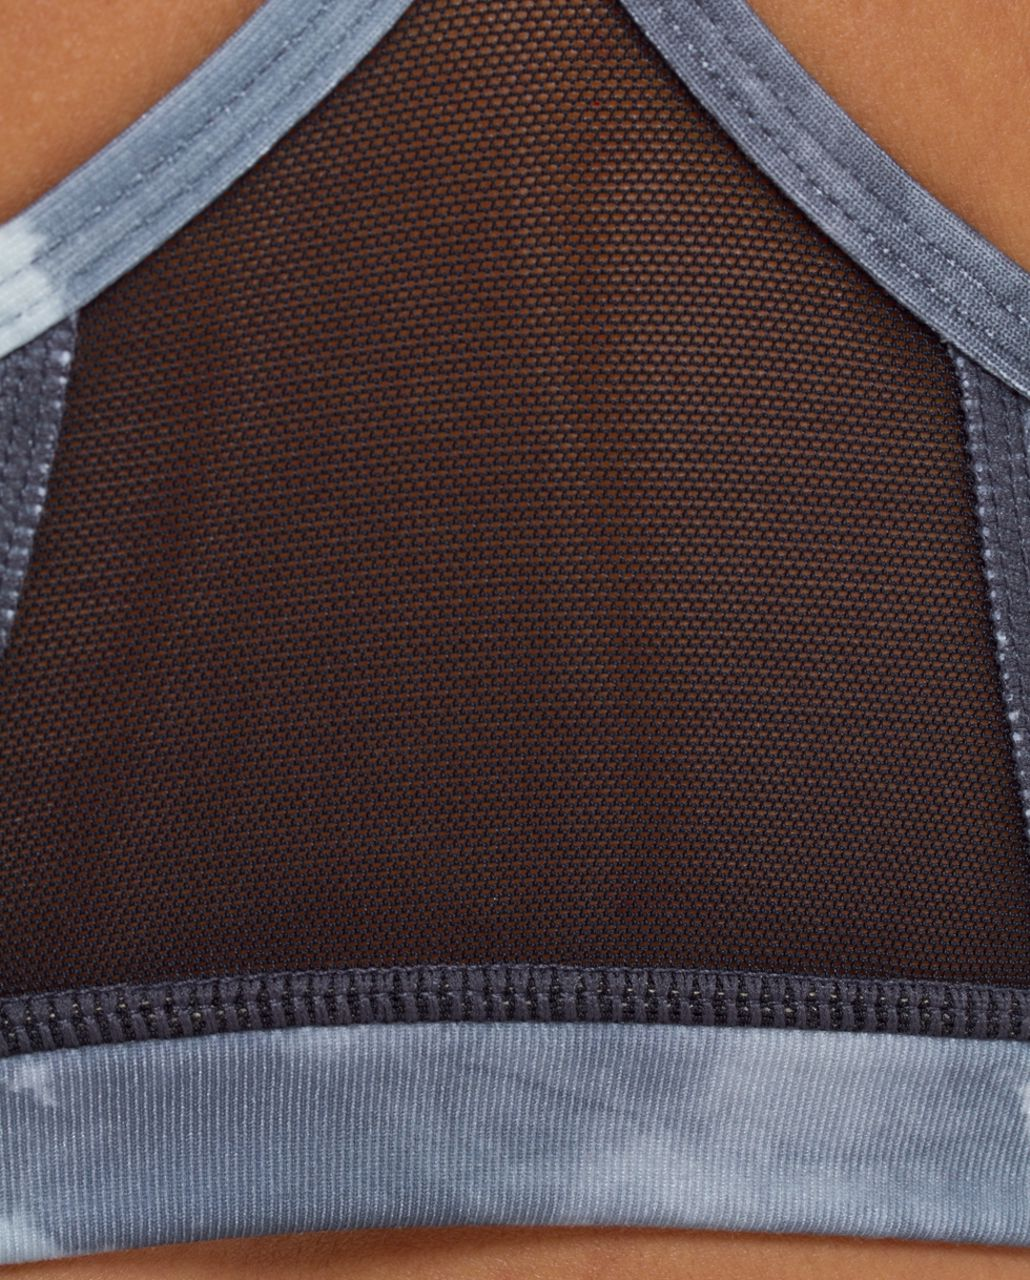 Lululemon Flow Y Bra IV - White Coal Tinted Canvas Super